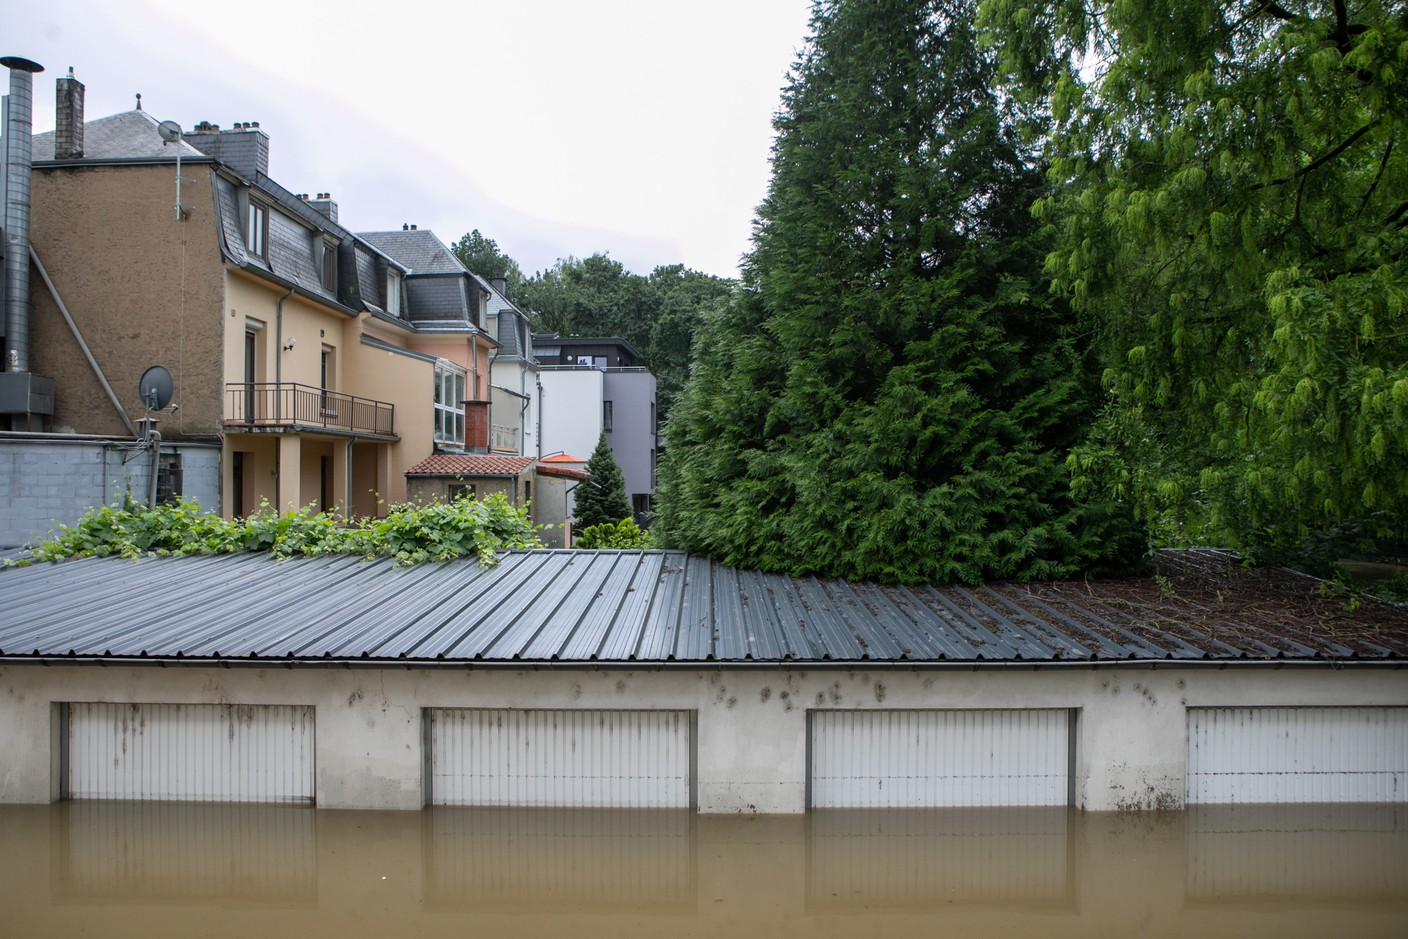 Floodwaters are seen in the capital's Weimerskirch district, 15 July 2021. Matic Zorman / Maison Moderne